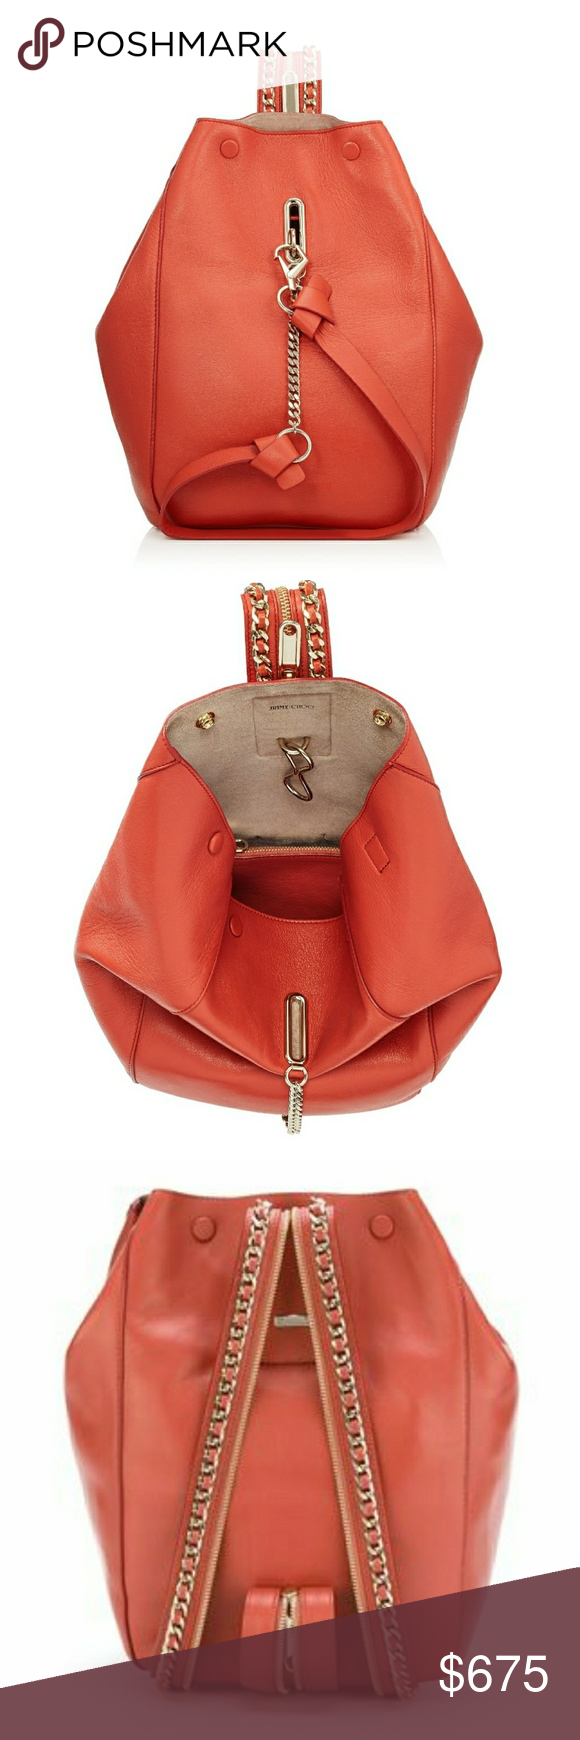 Jimmy Choo Echo Backpack In Autumn Orange 100 Authentic Brand New Without Original Tags I Believe Do Have The Nordstrom Listing It At 1800